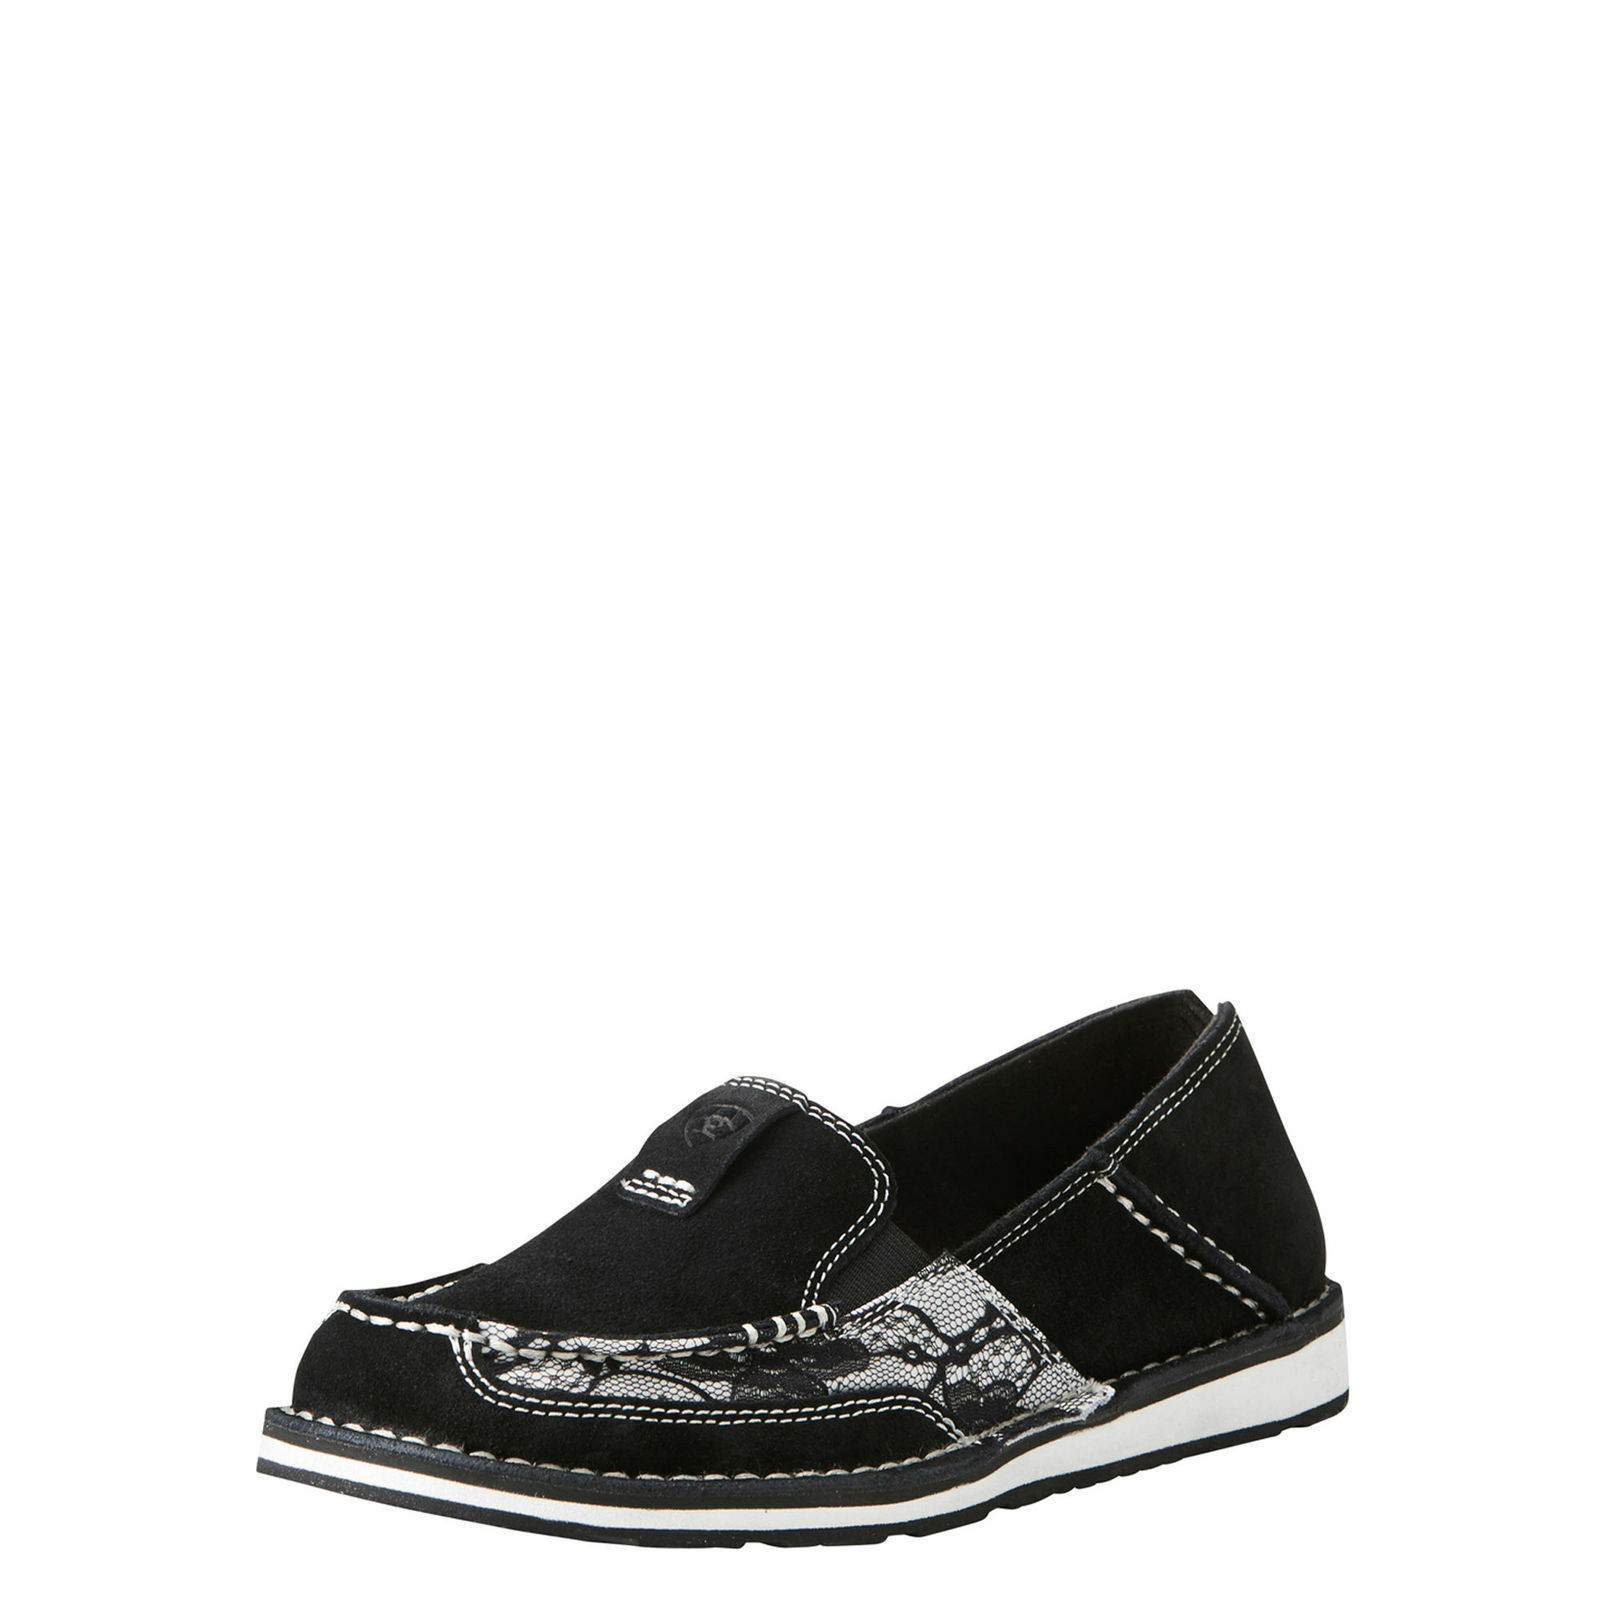 Ariat 10021753 Cruiser Black Lace Western Casual Slip On Moc Toe shoes Loafers